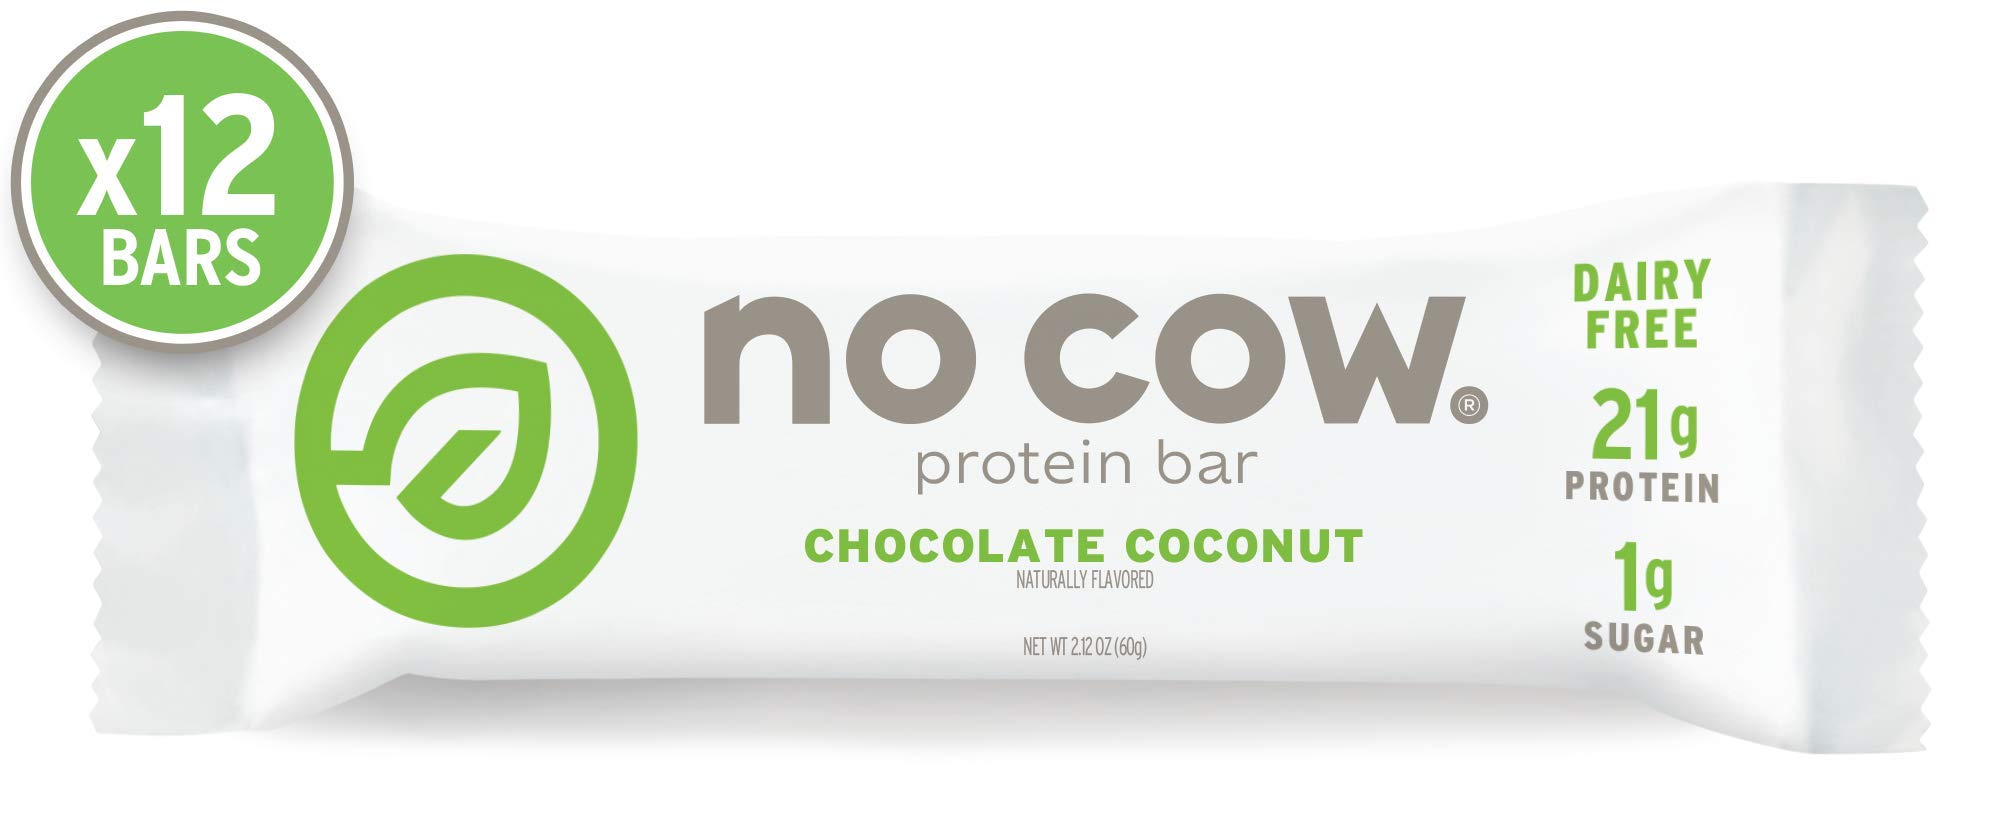 No Cow Protein Bar Chocolate Coconut, Plant Based Protein (21g), Keto Friendly, Low Sugar, Dairy Free, Gluten Free, Vegan, High Fiber, Non-GMO, 12 Count